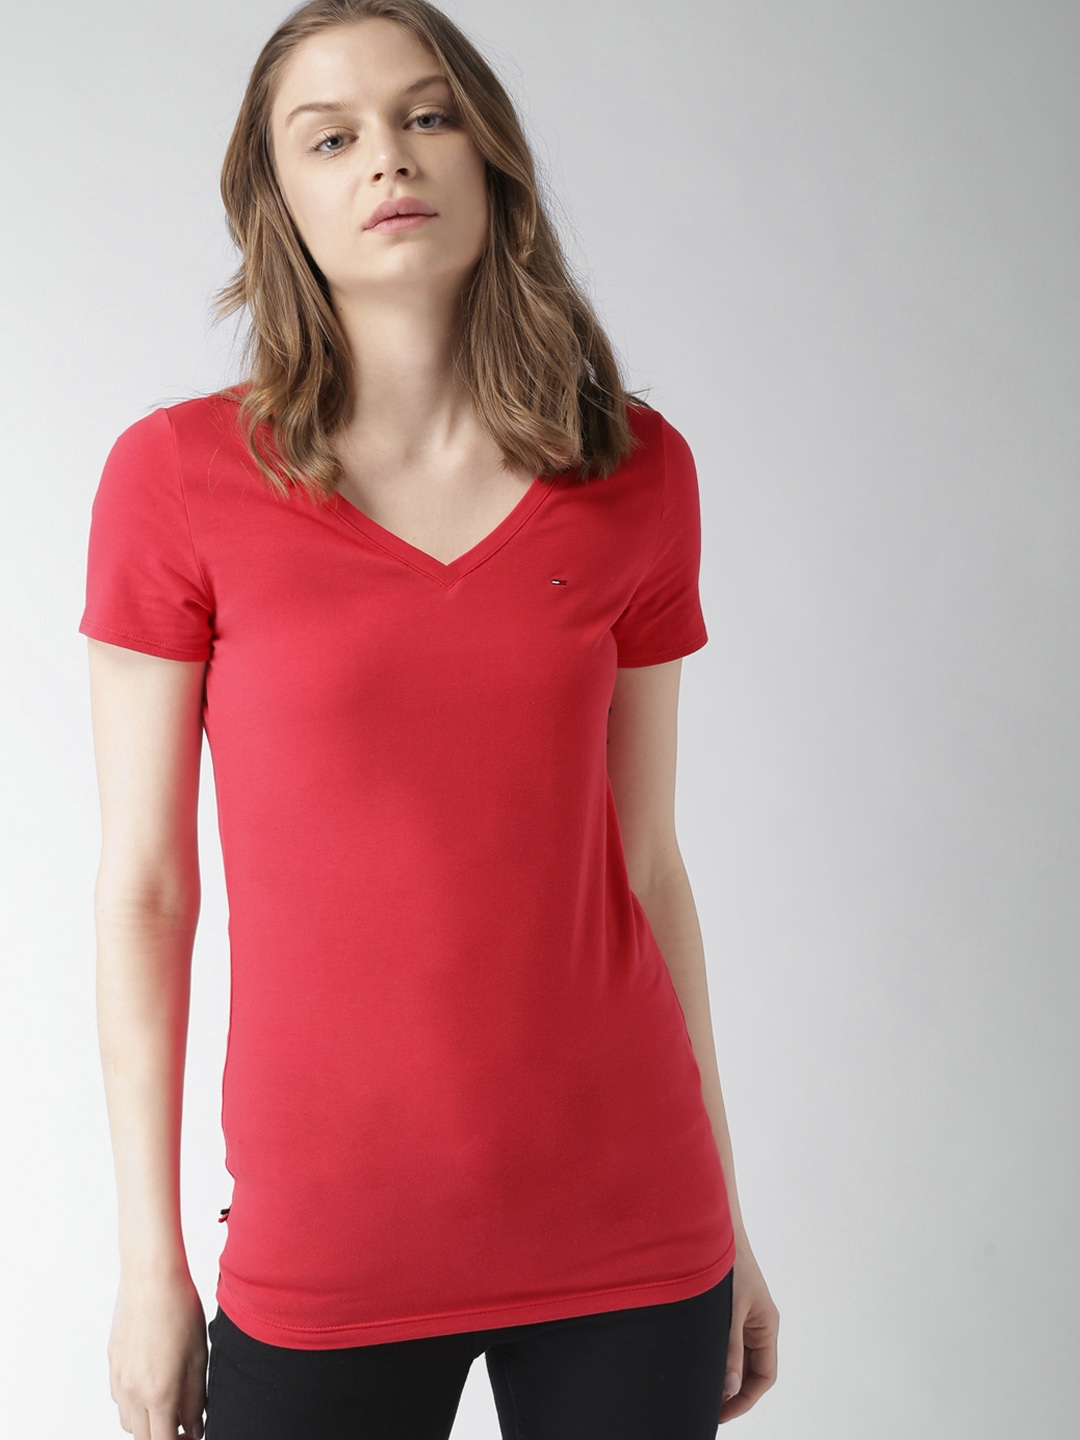 bc0de1a07cf2 Buy Tommy Hilfiger Women Red Solid V Neck T Shirt - Tshirts for ...